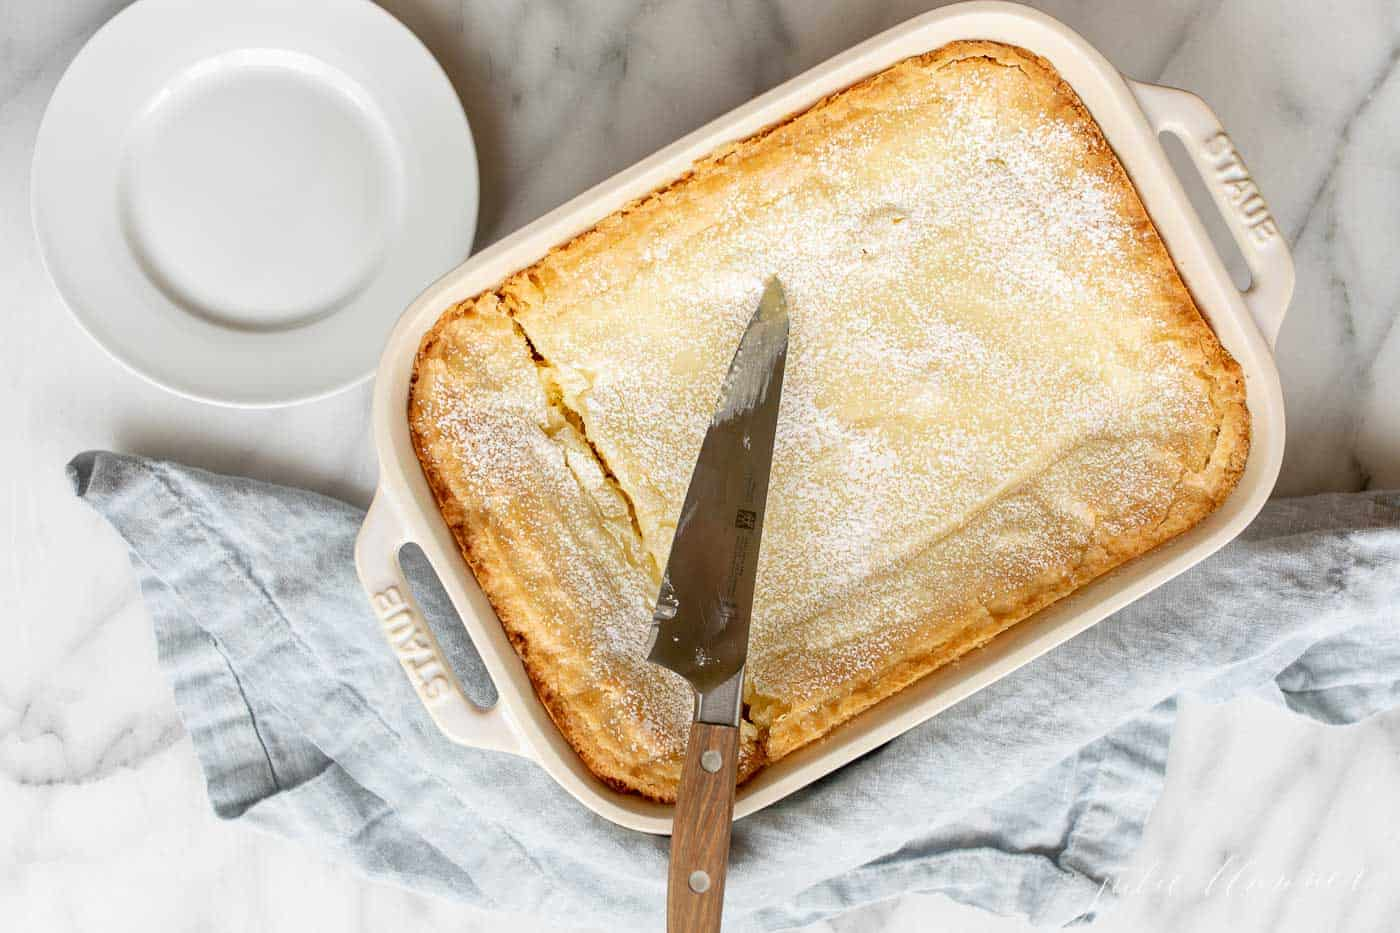 gooey butter cake sliced in a baking dish